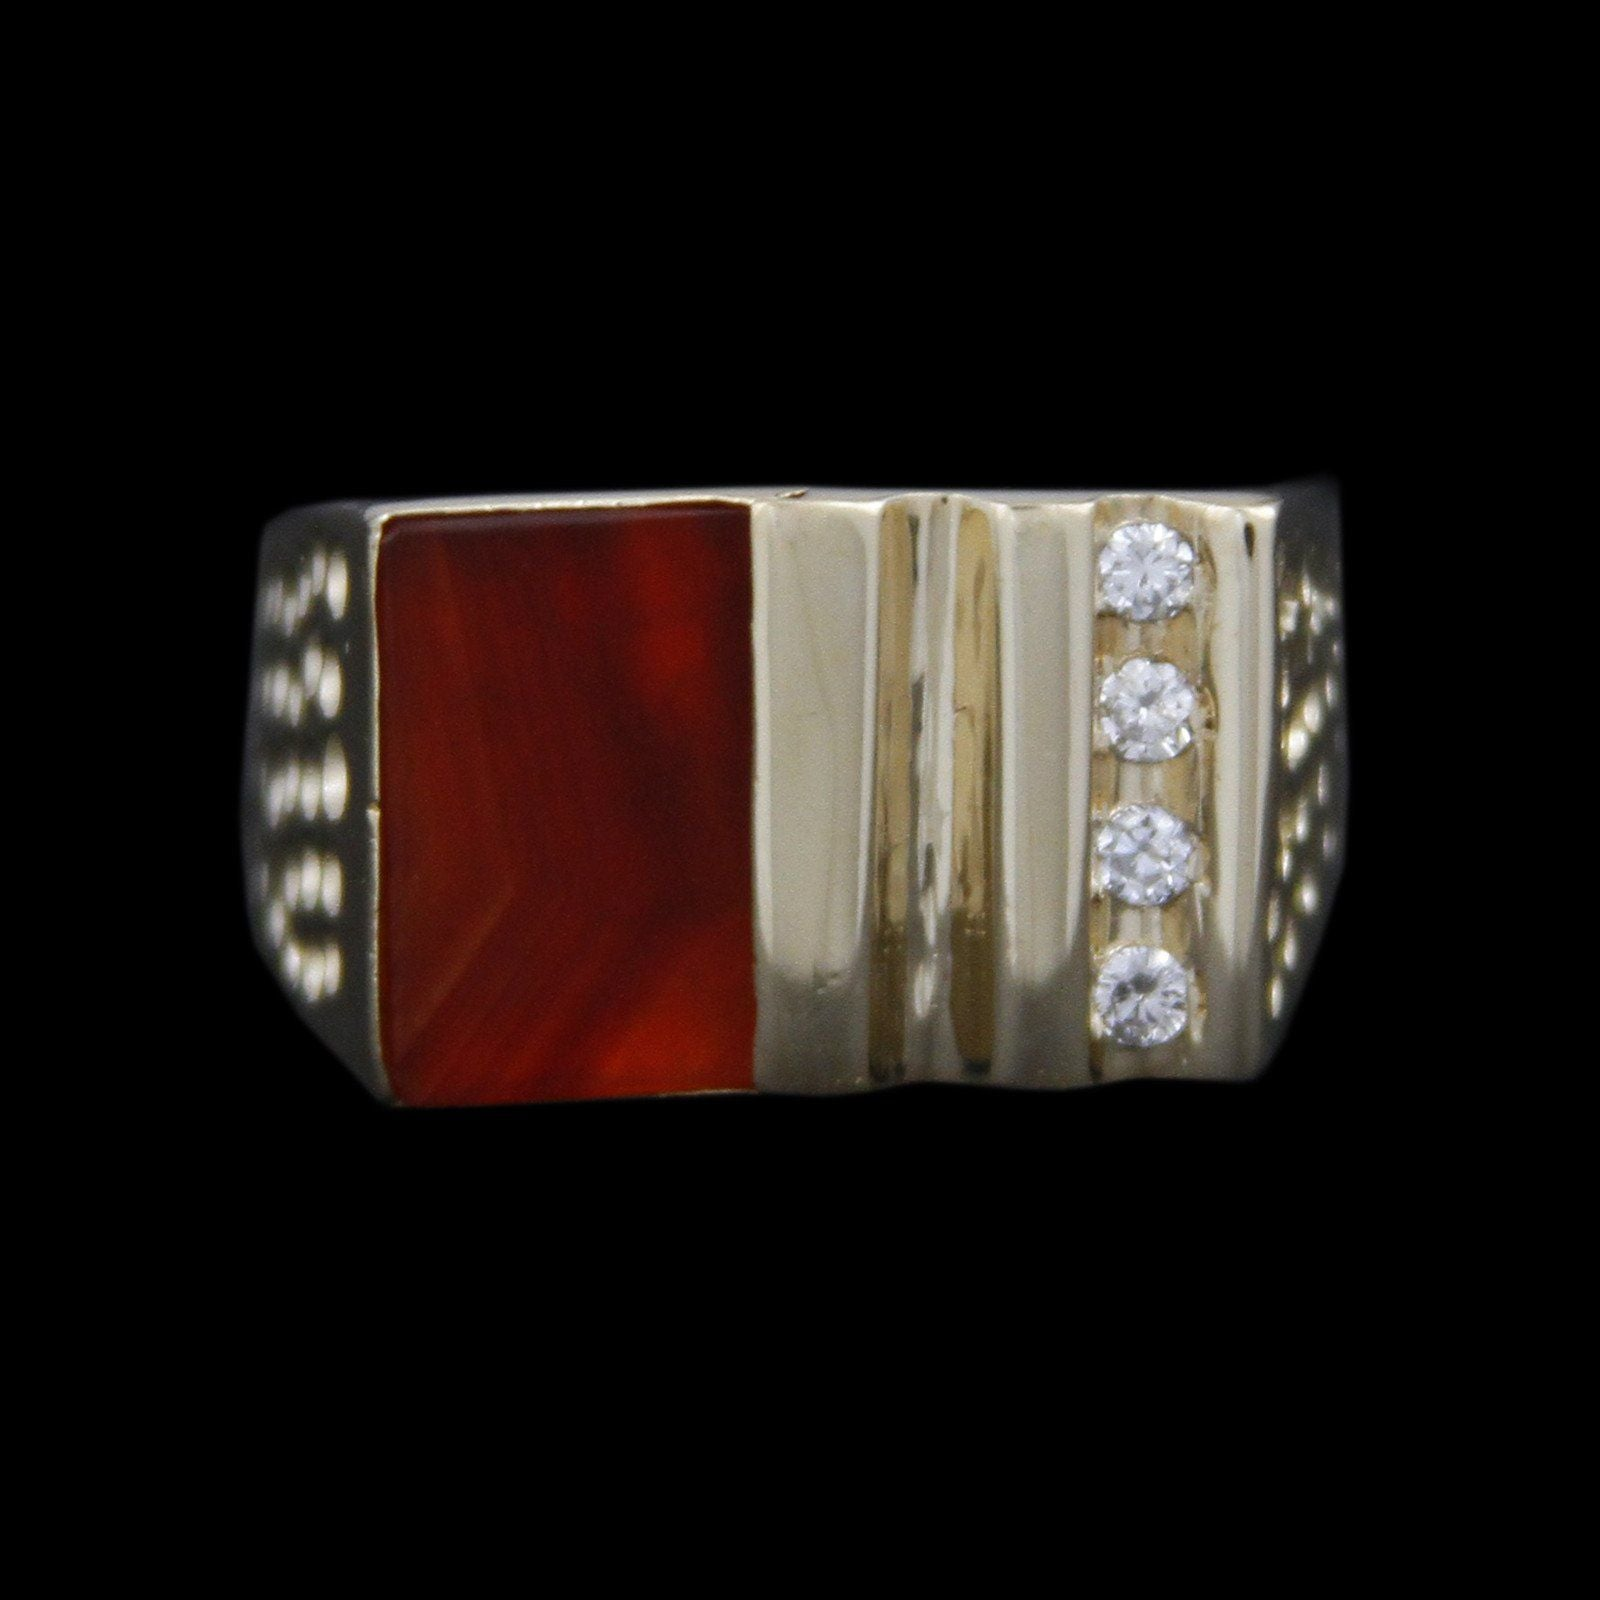 Gents Square Flat Set Sardonyx with Channel Set Diamonds & Dimpled Sides in 14K Yellow Gold